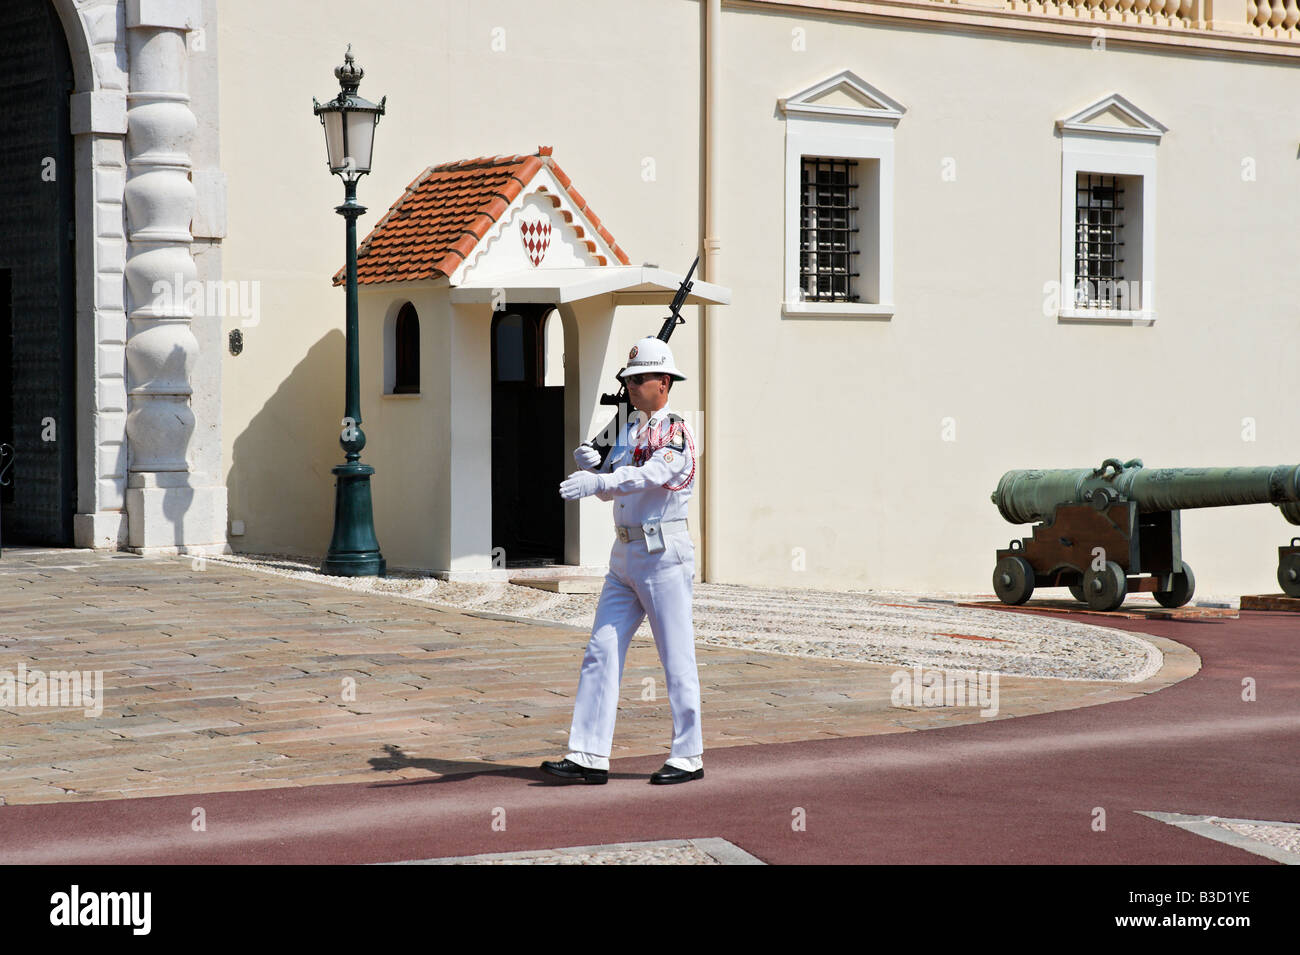 Changing of the Guard in front of the Royal Palace, Place du Palais, Monaco Ville, Monaco, French Riviera, Cote - Stock Image